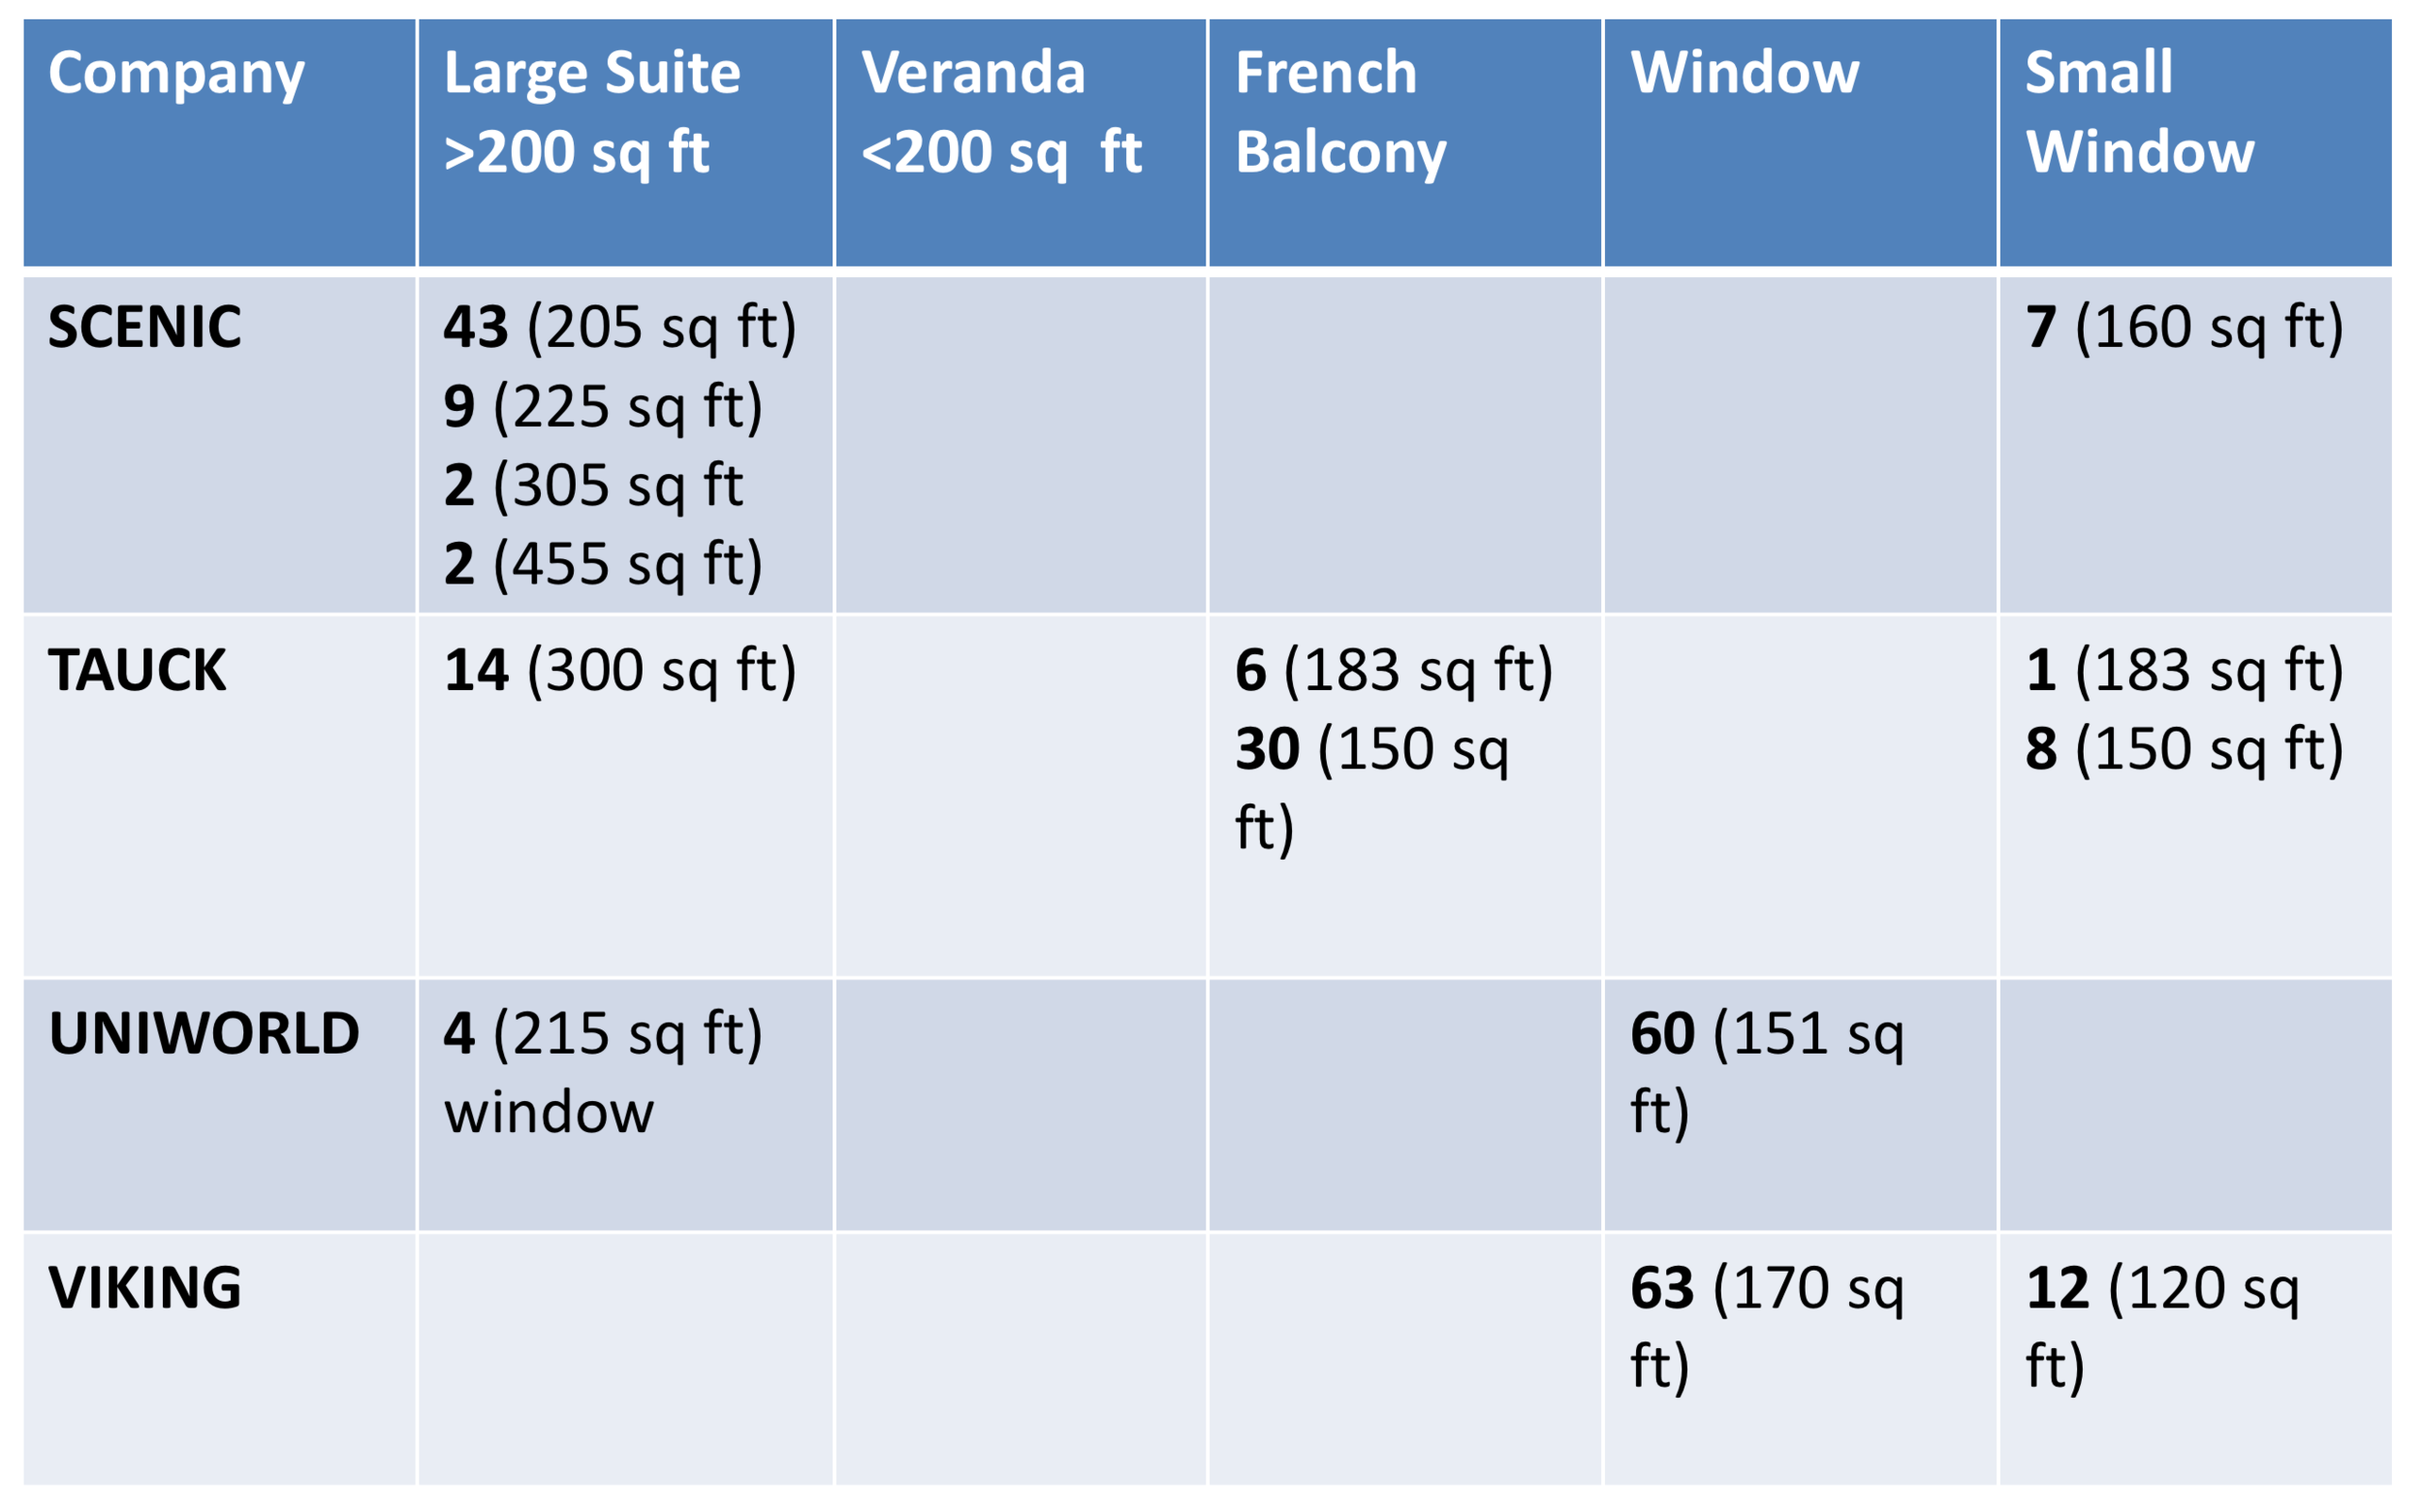 Stateroom size and views chart for 110M class European River Cruise ships - 2019 European River Cruise Comparison - Dream Destinations